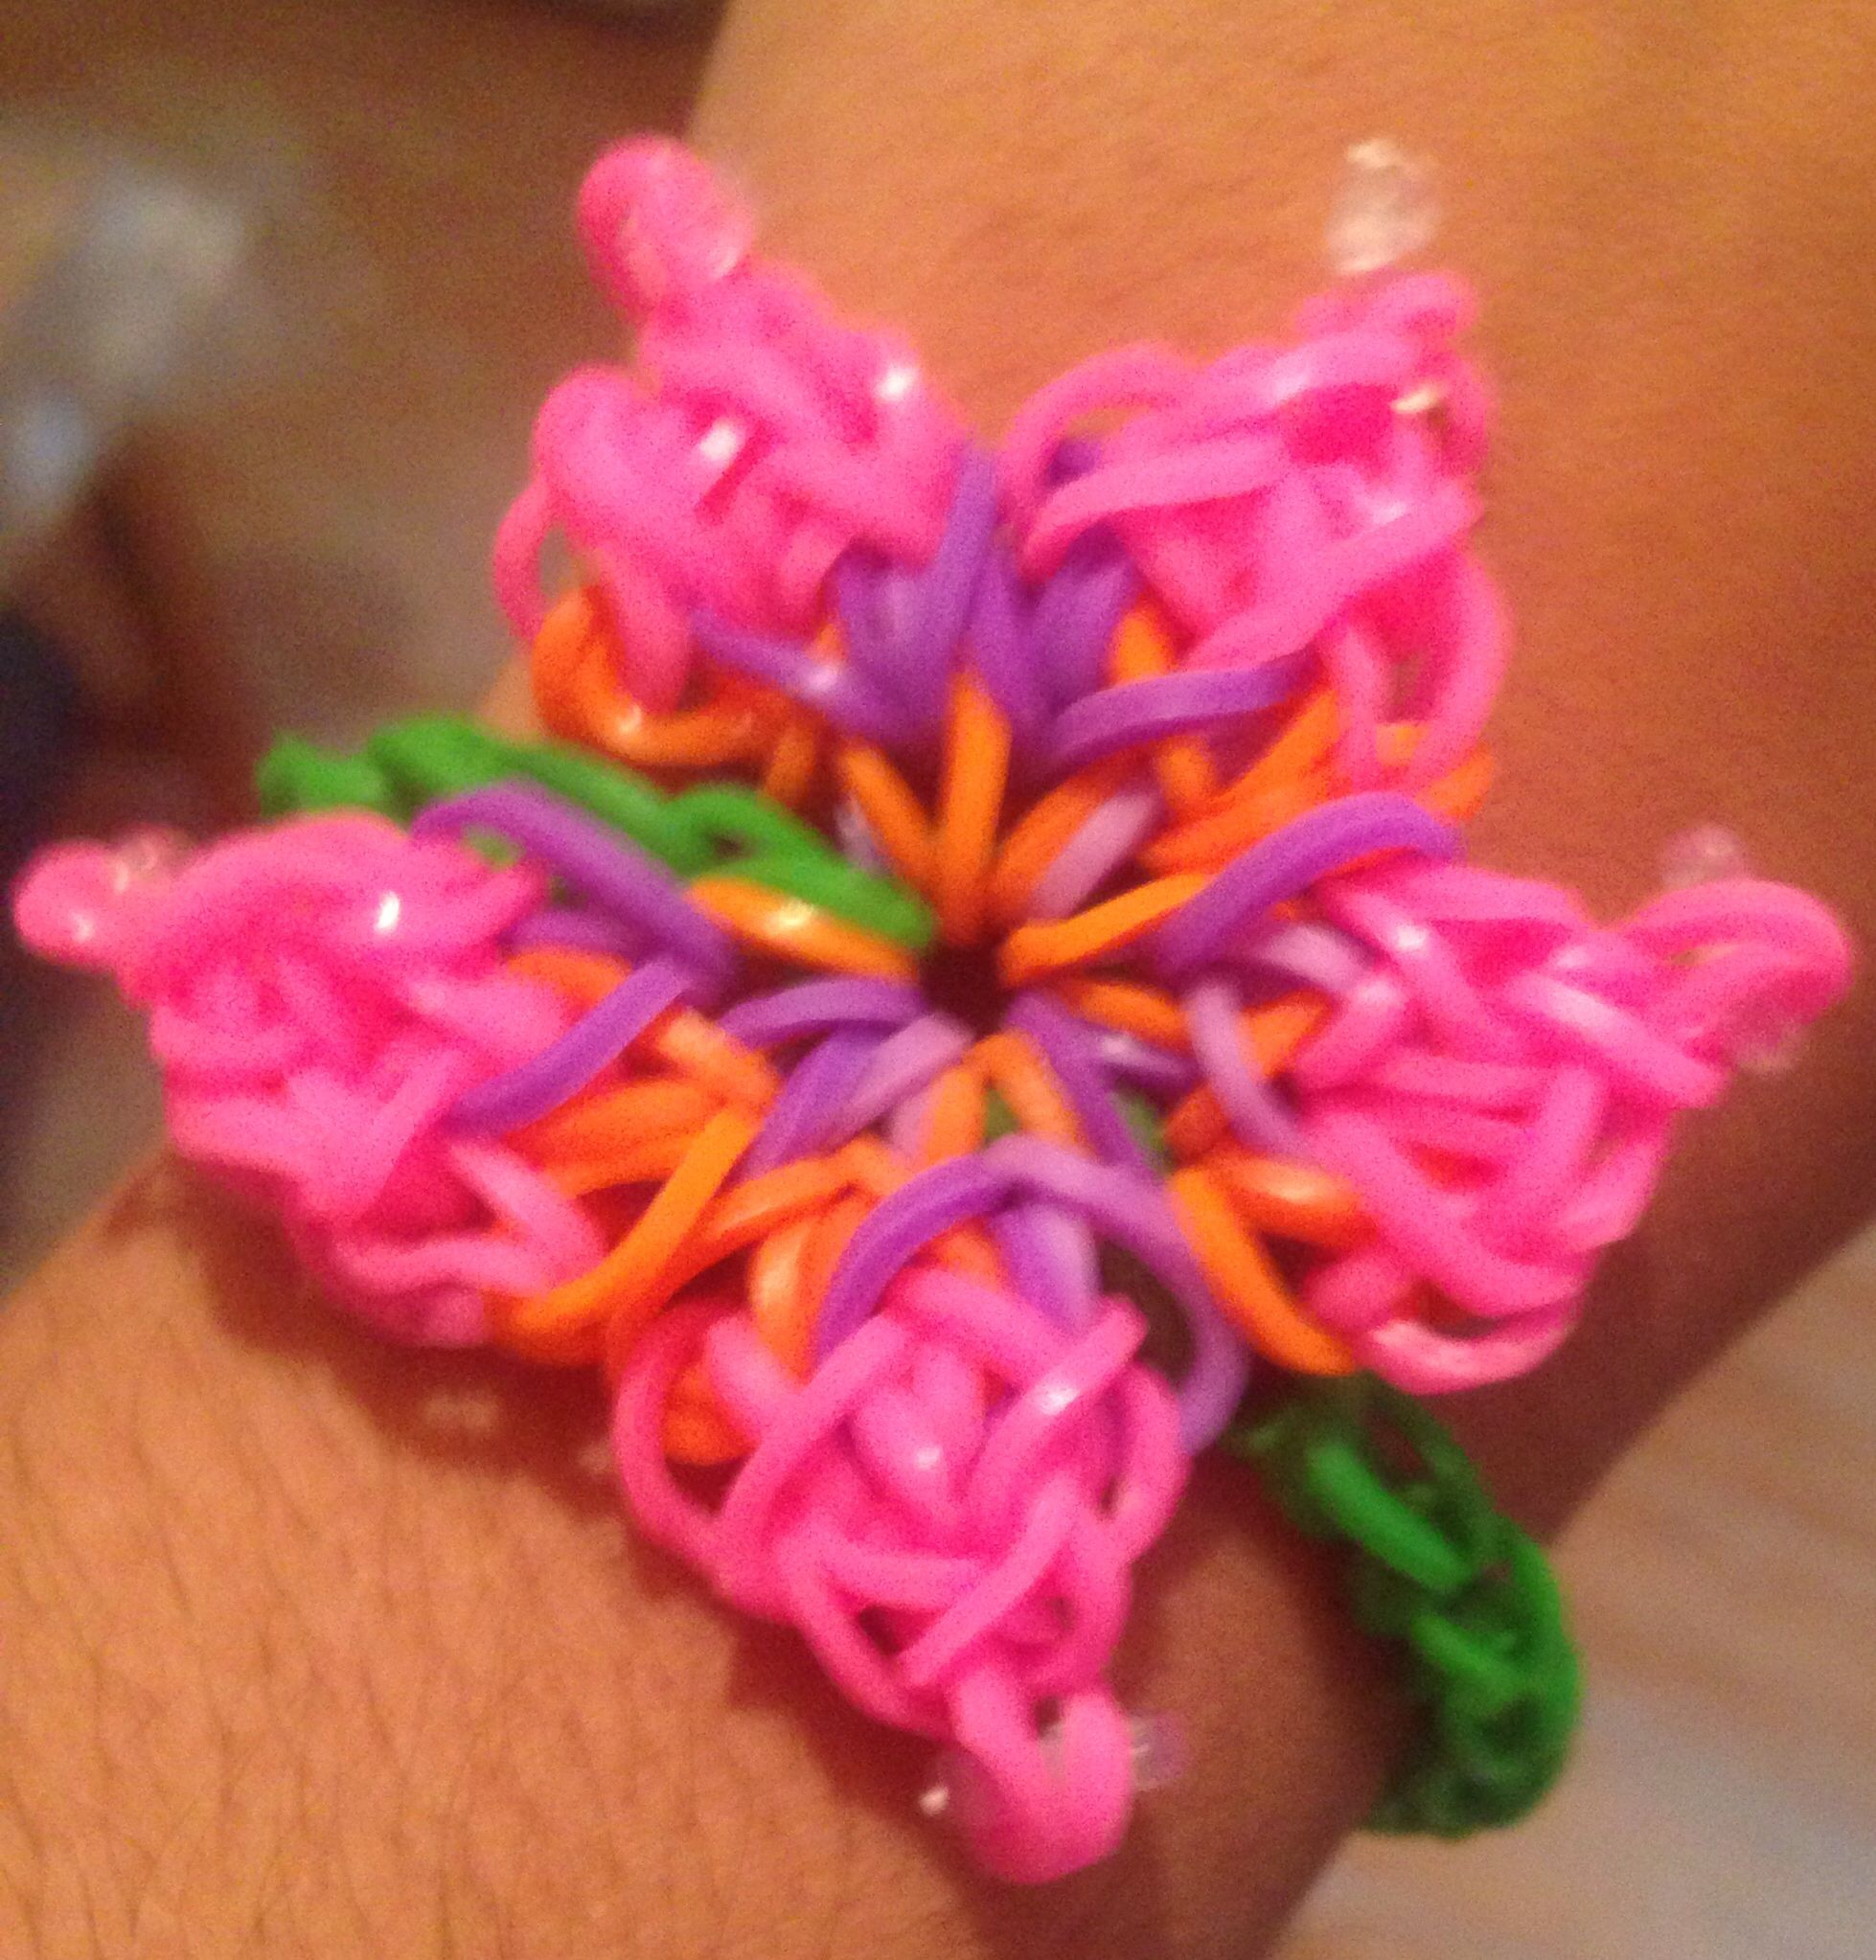 Hibiscus Flower Rubber Band Bracelet Loom Bands Rubber Band Bracelet Rainbow Loom